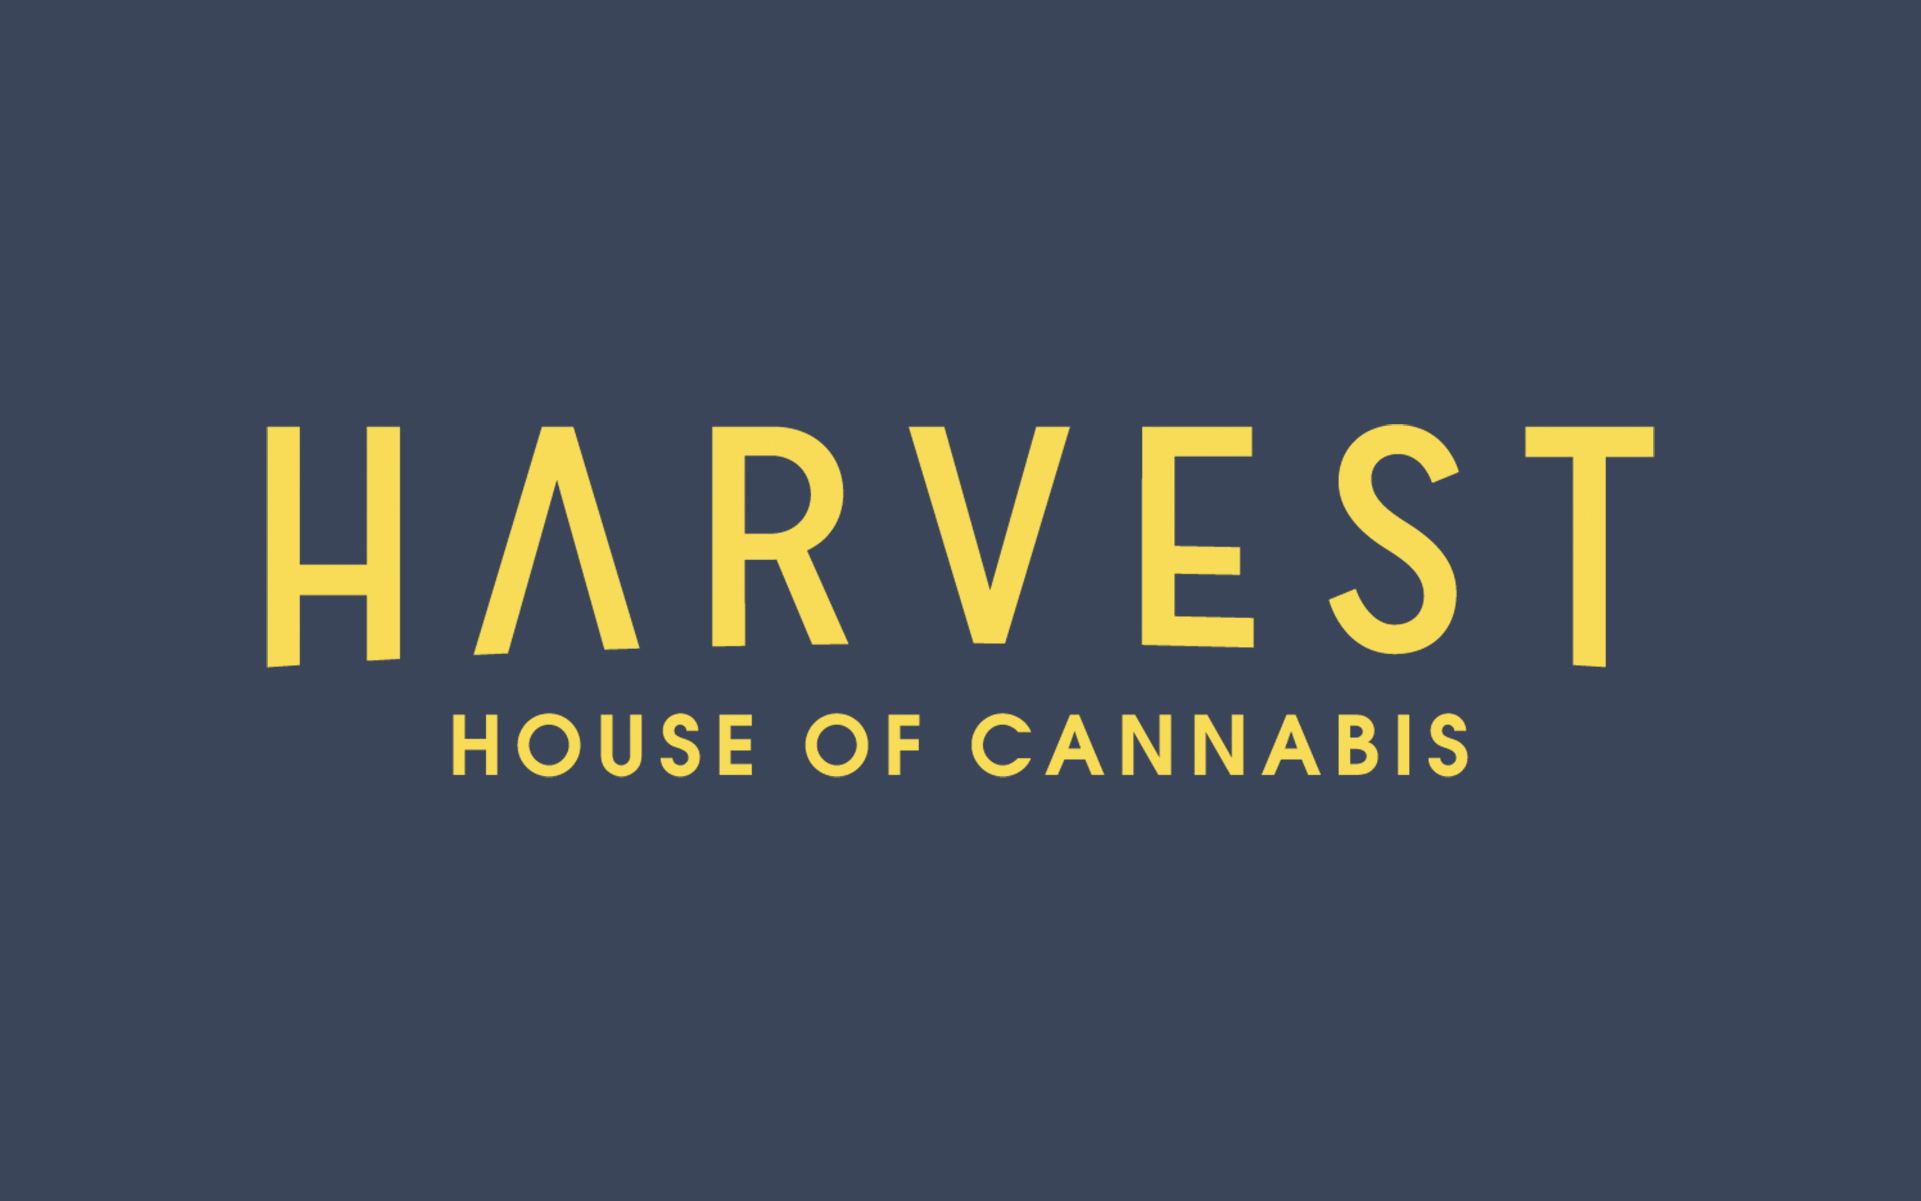 Find Harvest House of Cannabis in Arizona | Leafly